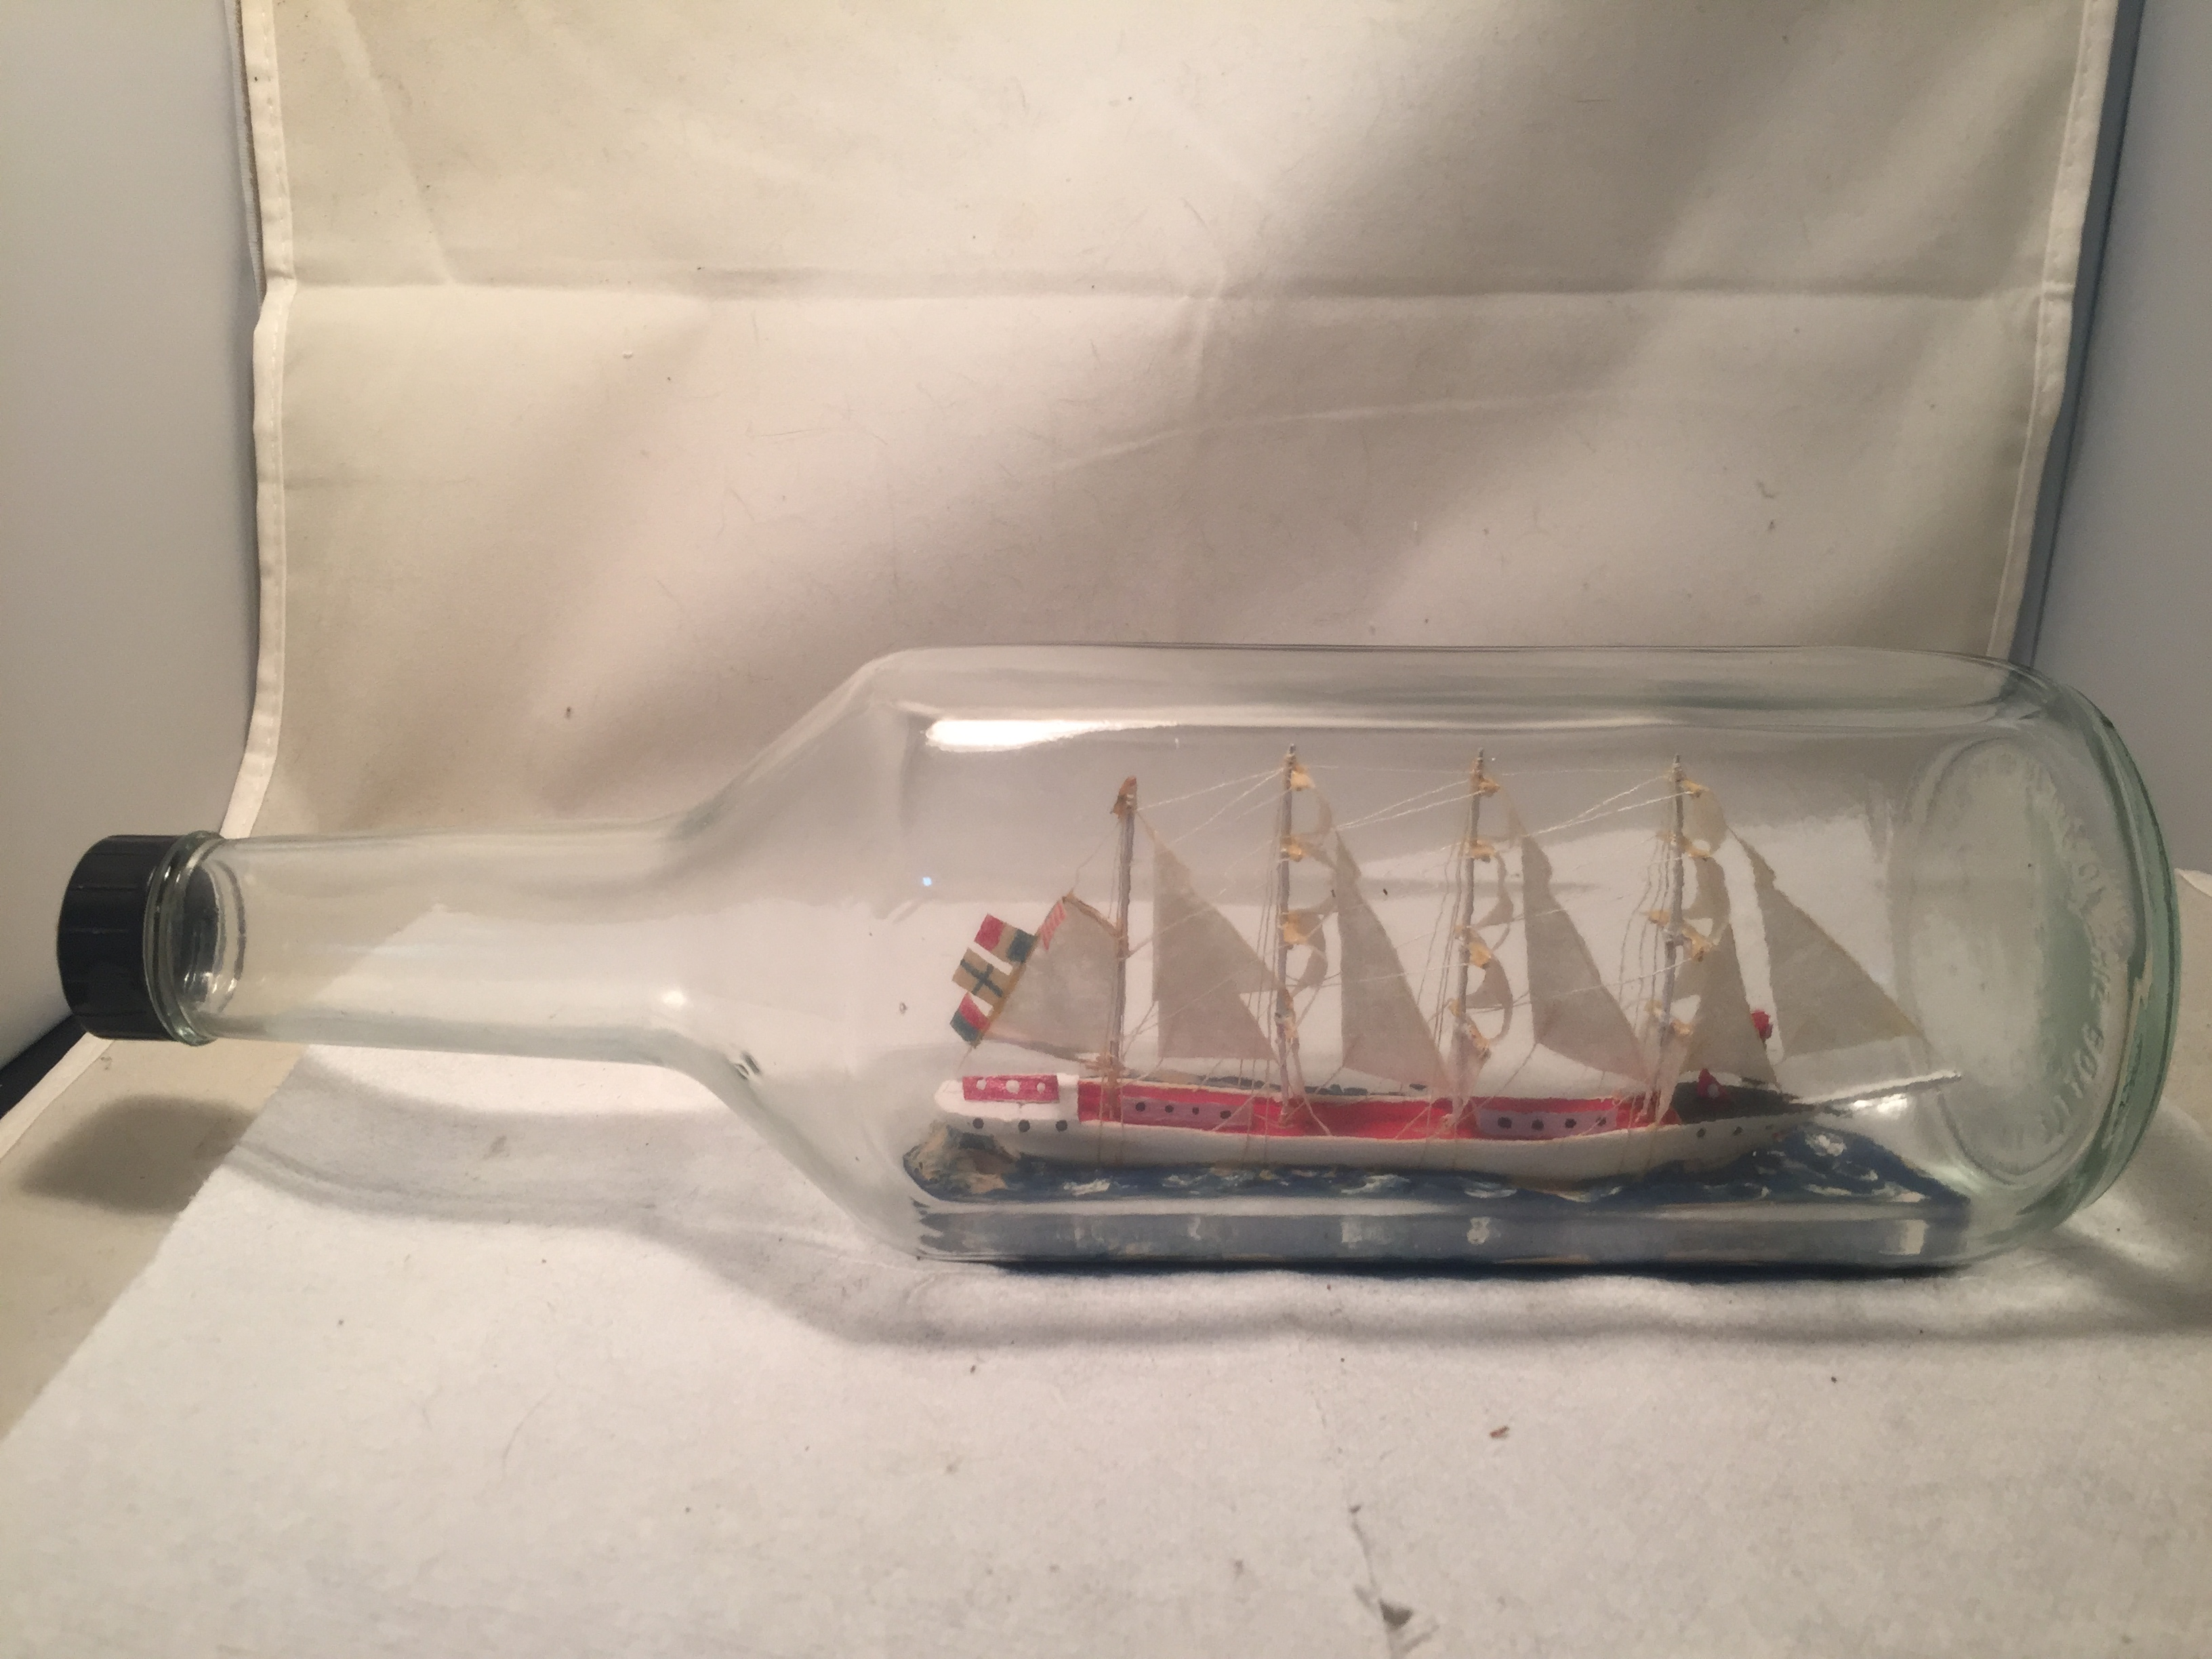 French Fully rigged ship in a bottle